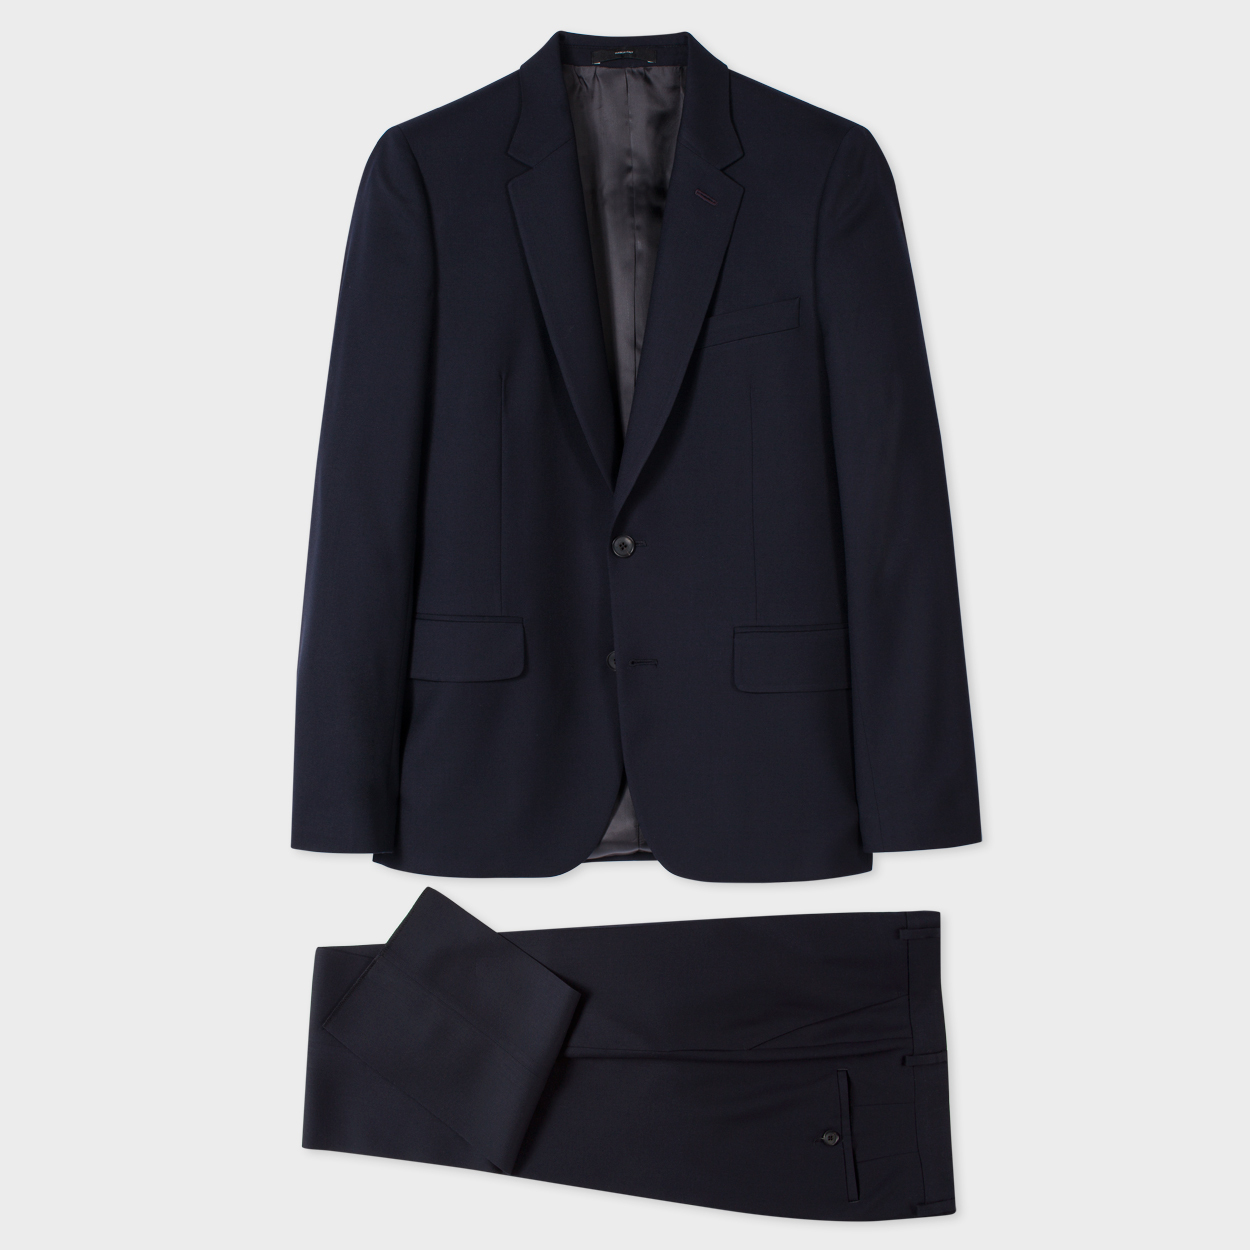 Paul Smith The Soho - Men's Tailored-Fit Navy Wool 'Suit To Travel In'